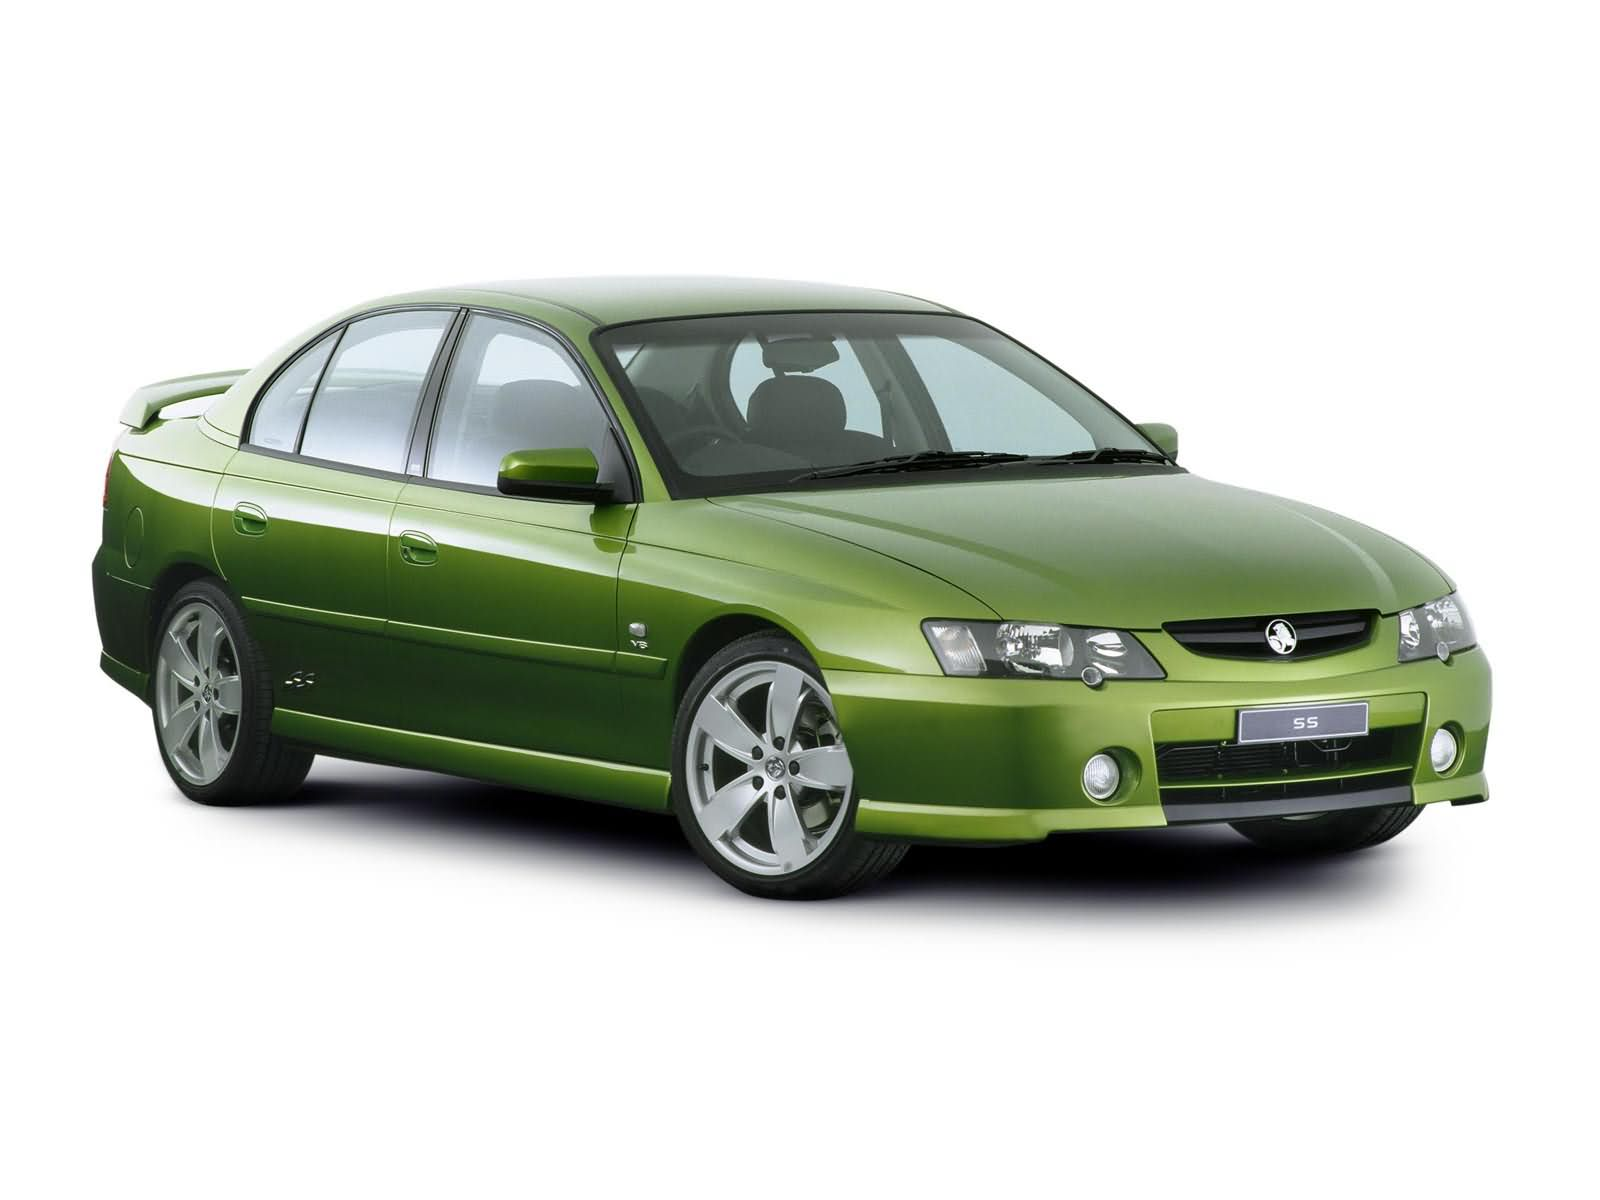 VY Holden Commodore (2002-2004)